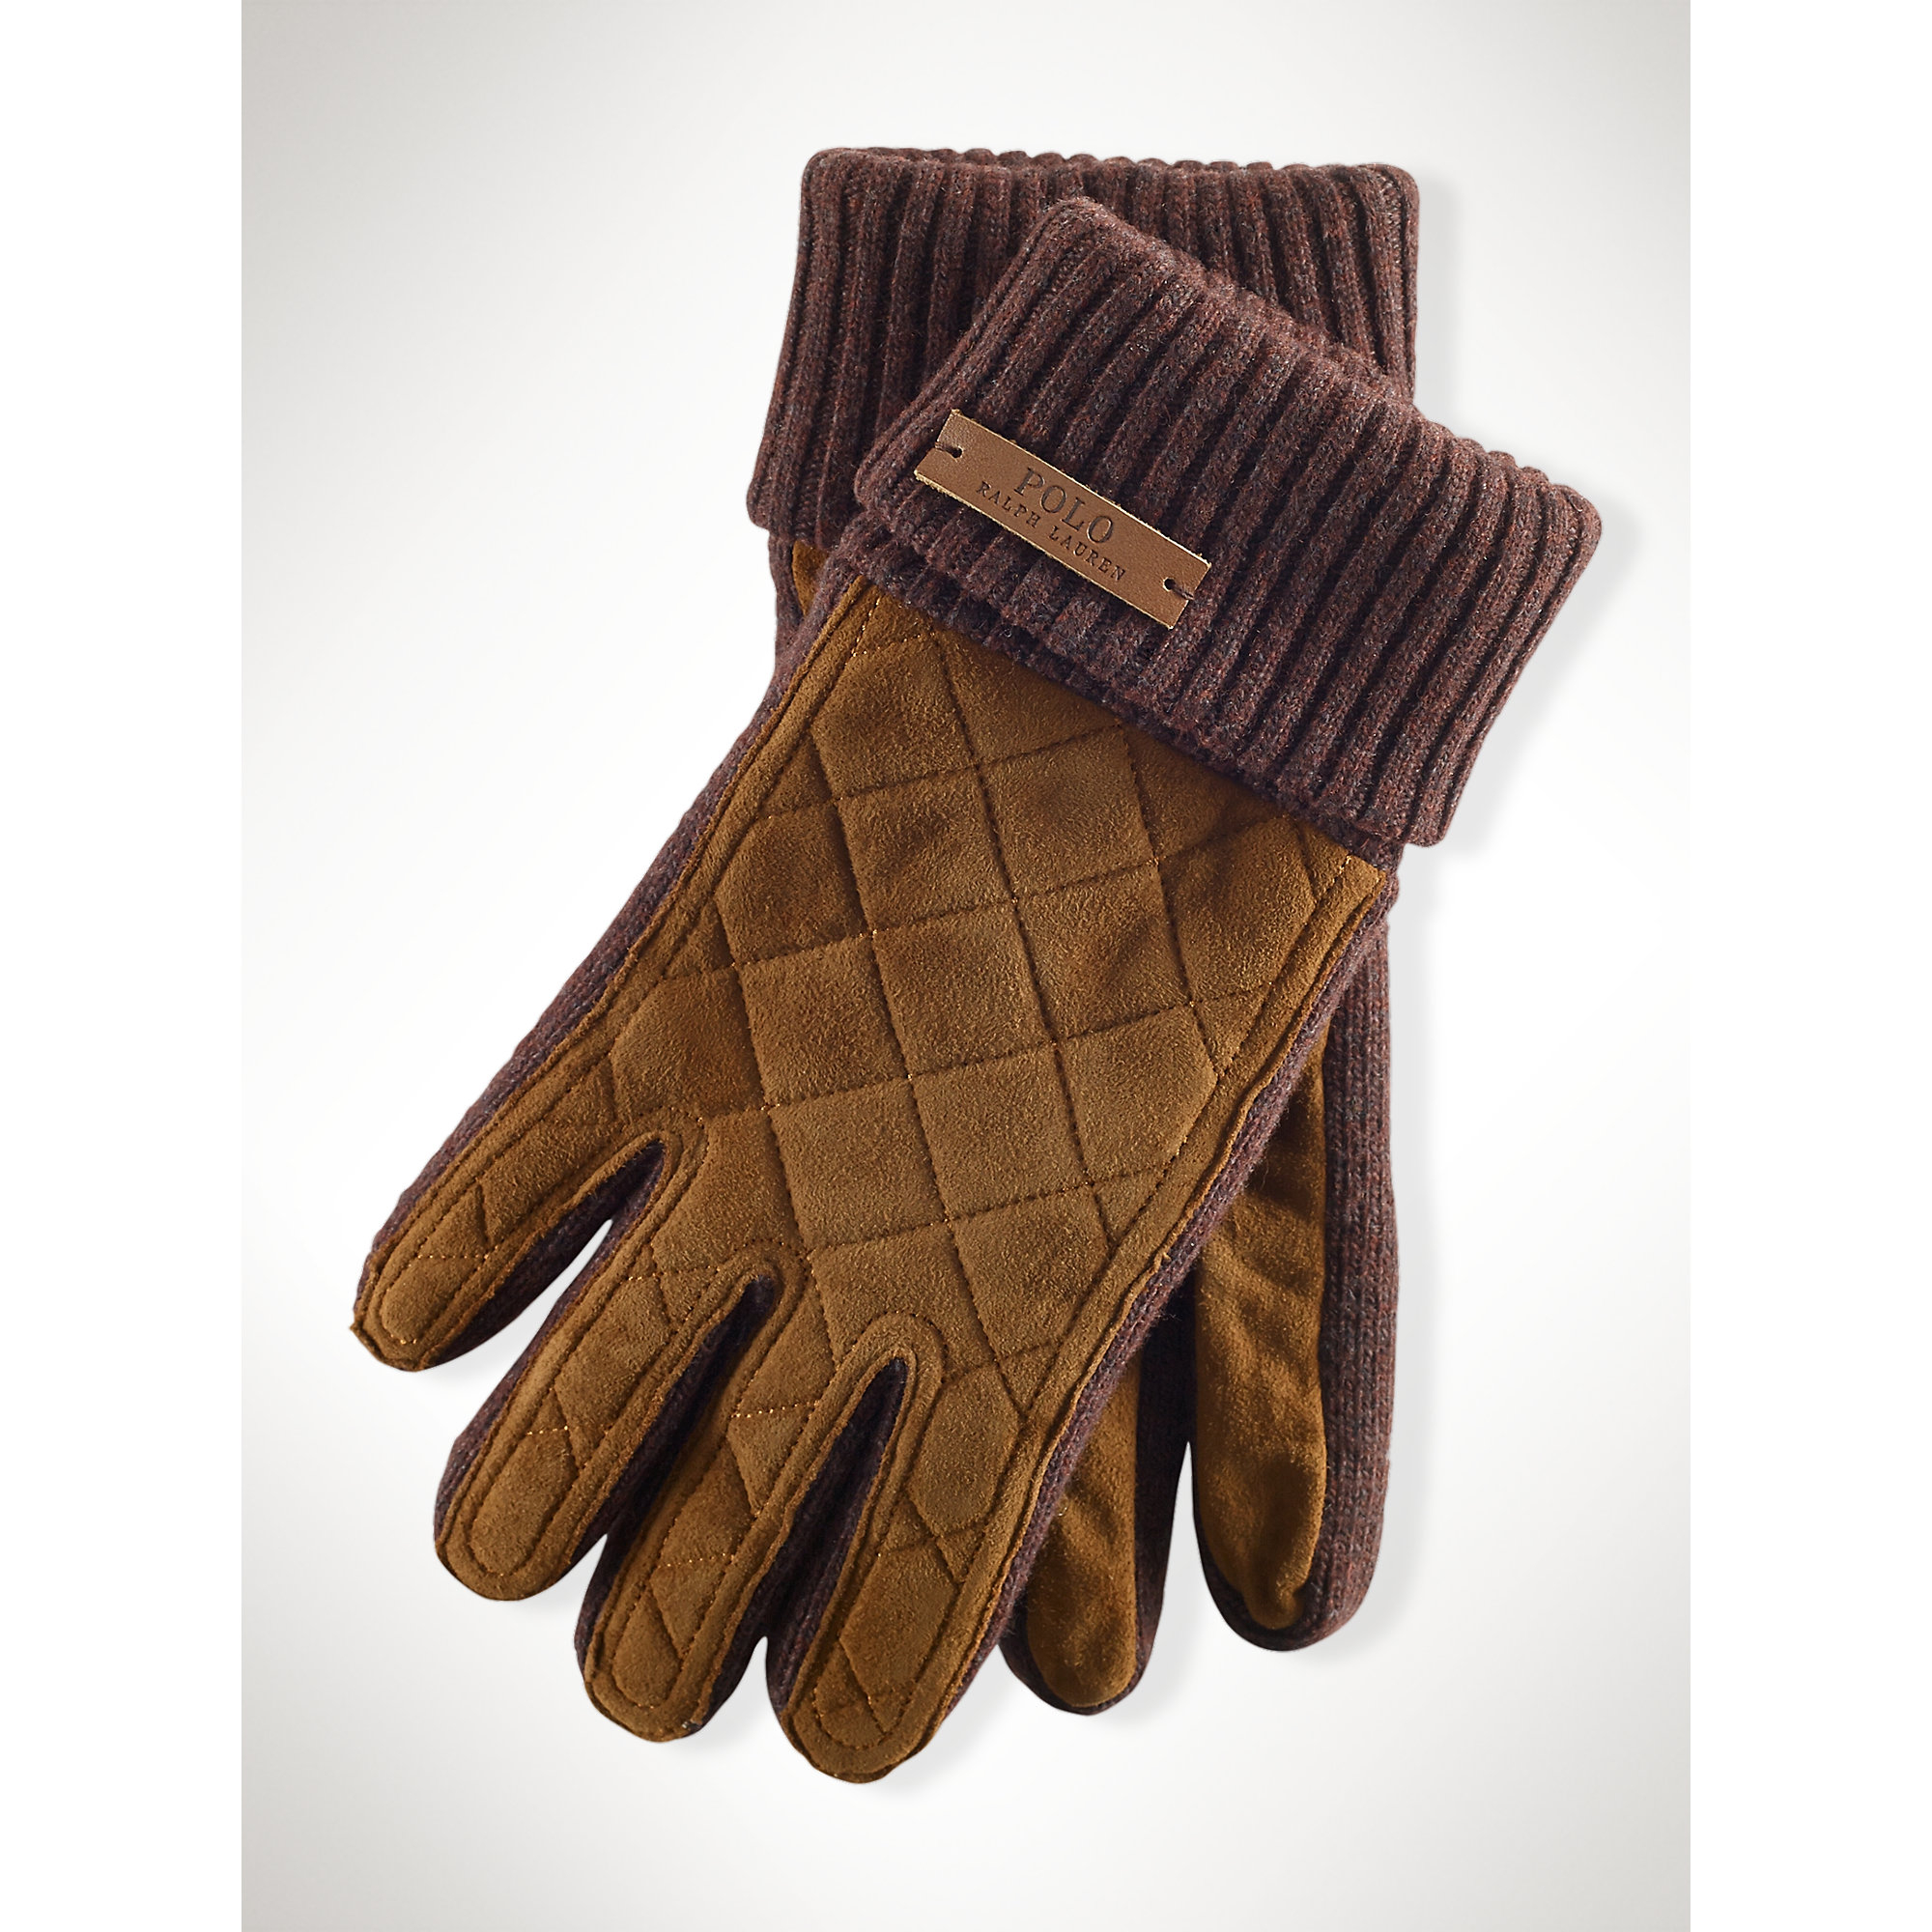 Lyst - Polo ralph lauren Quilted Suede Gloves in Brown for Men : quilted racing gloves - Adamdwight.com